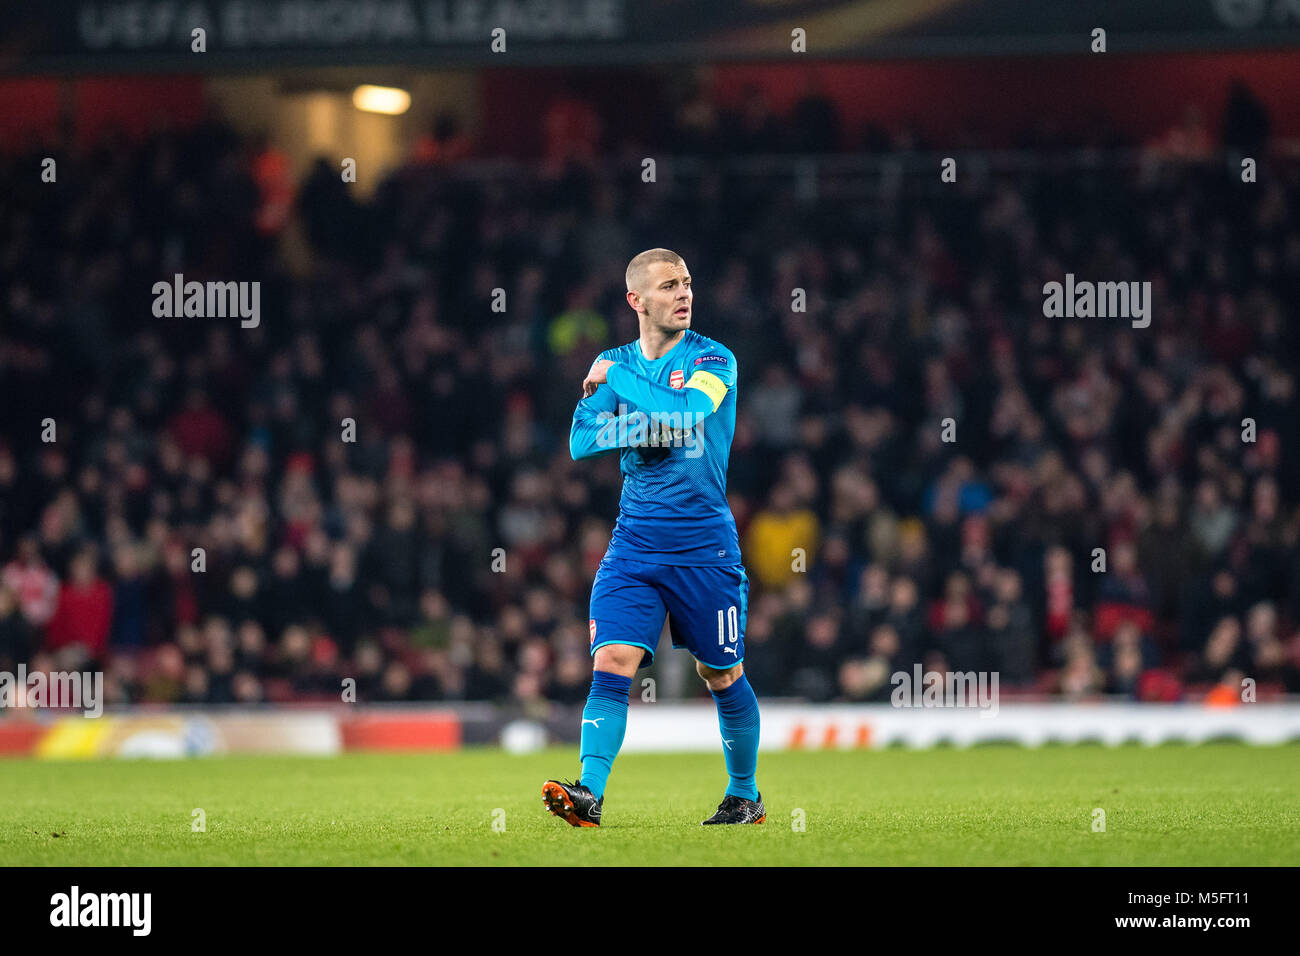 LONDON, ENGLAND - FEBRUARY 22: Jack Wilshere (10) of Arsenal during UEFA Europa League Round of 32 match between - Stock Image